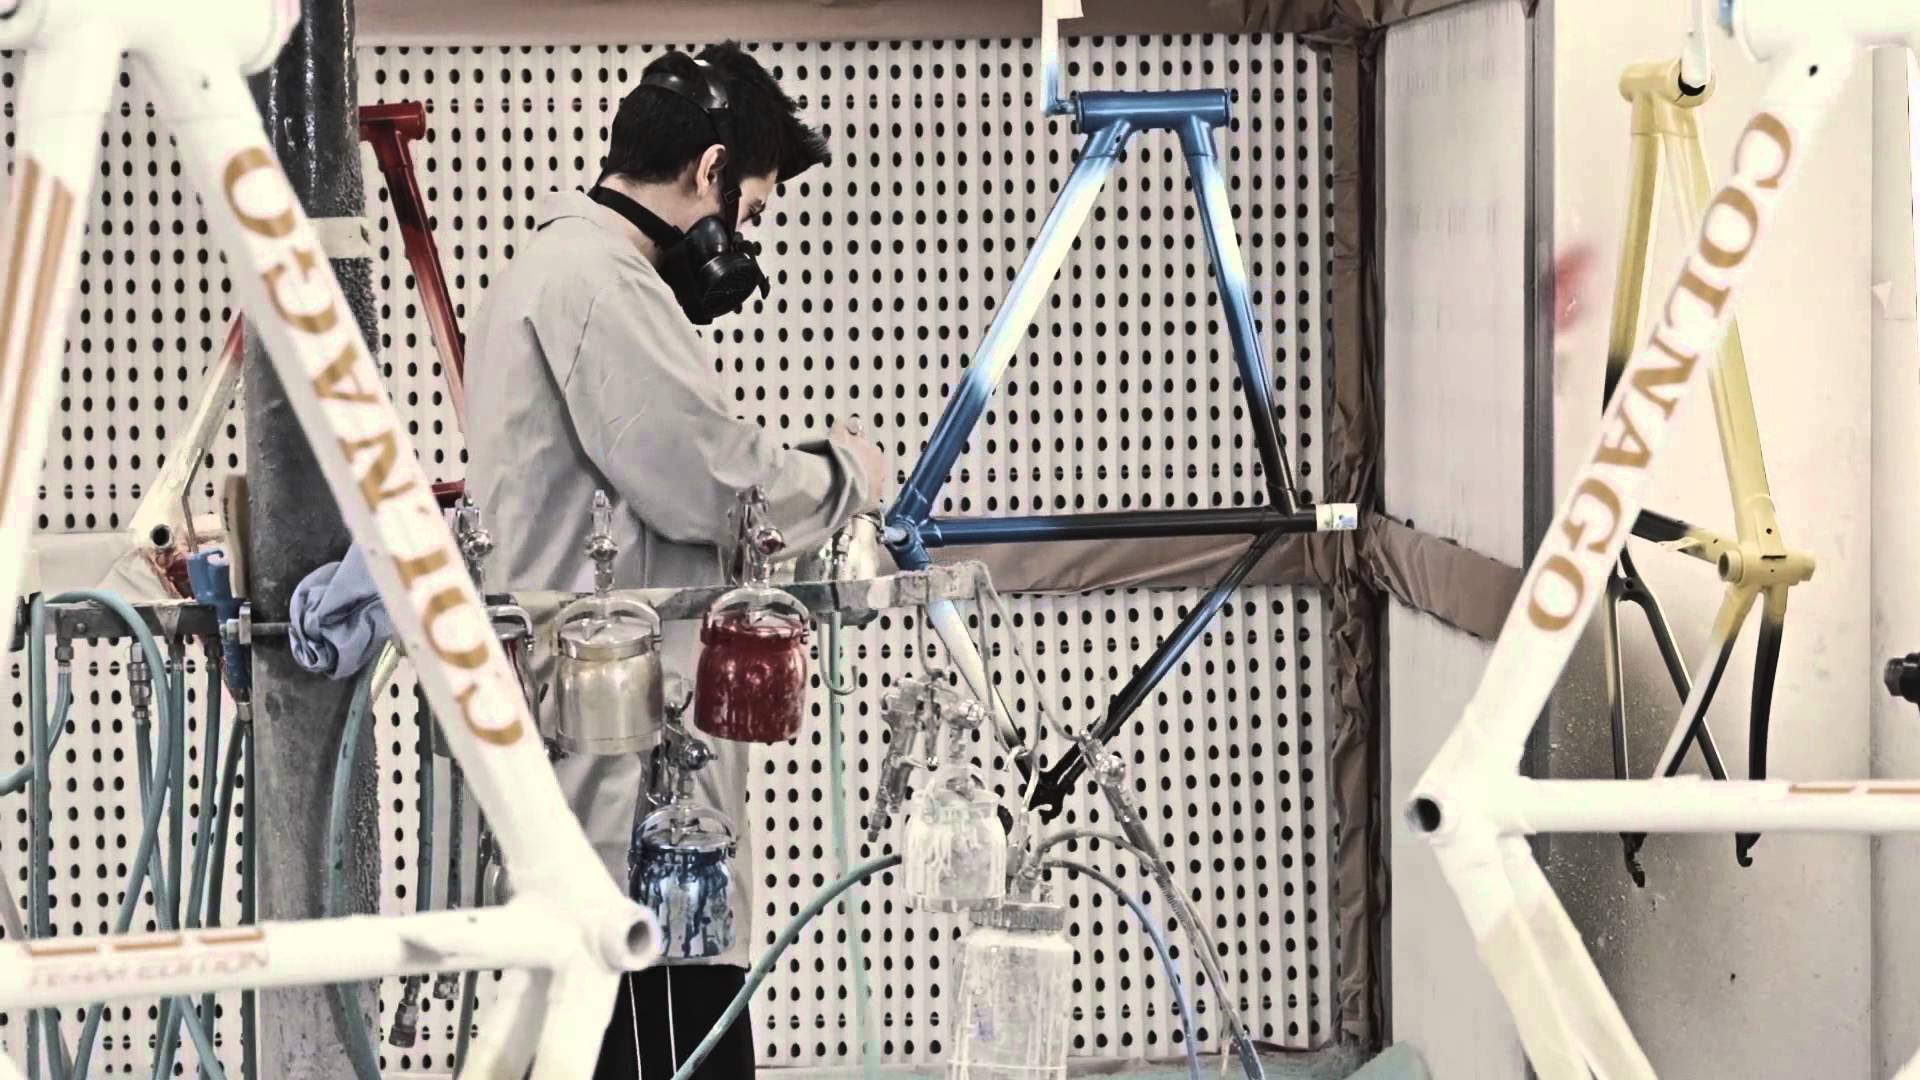 Watch the Colnago c60 painting process from their base in Tuscany